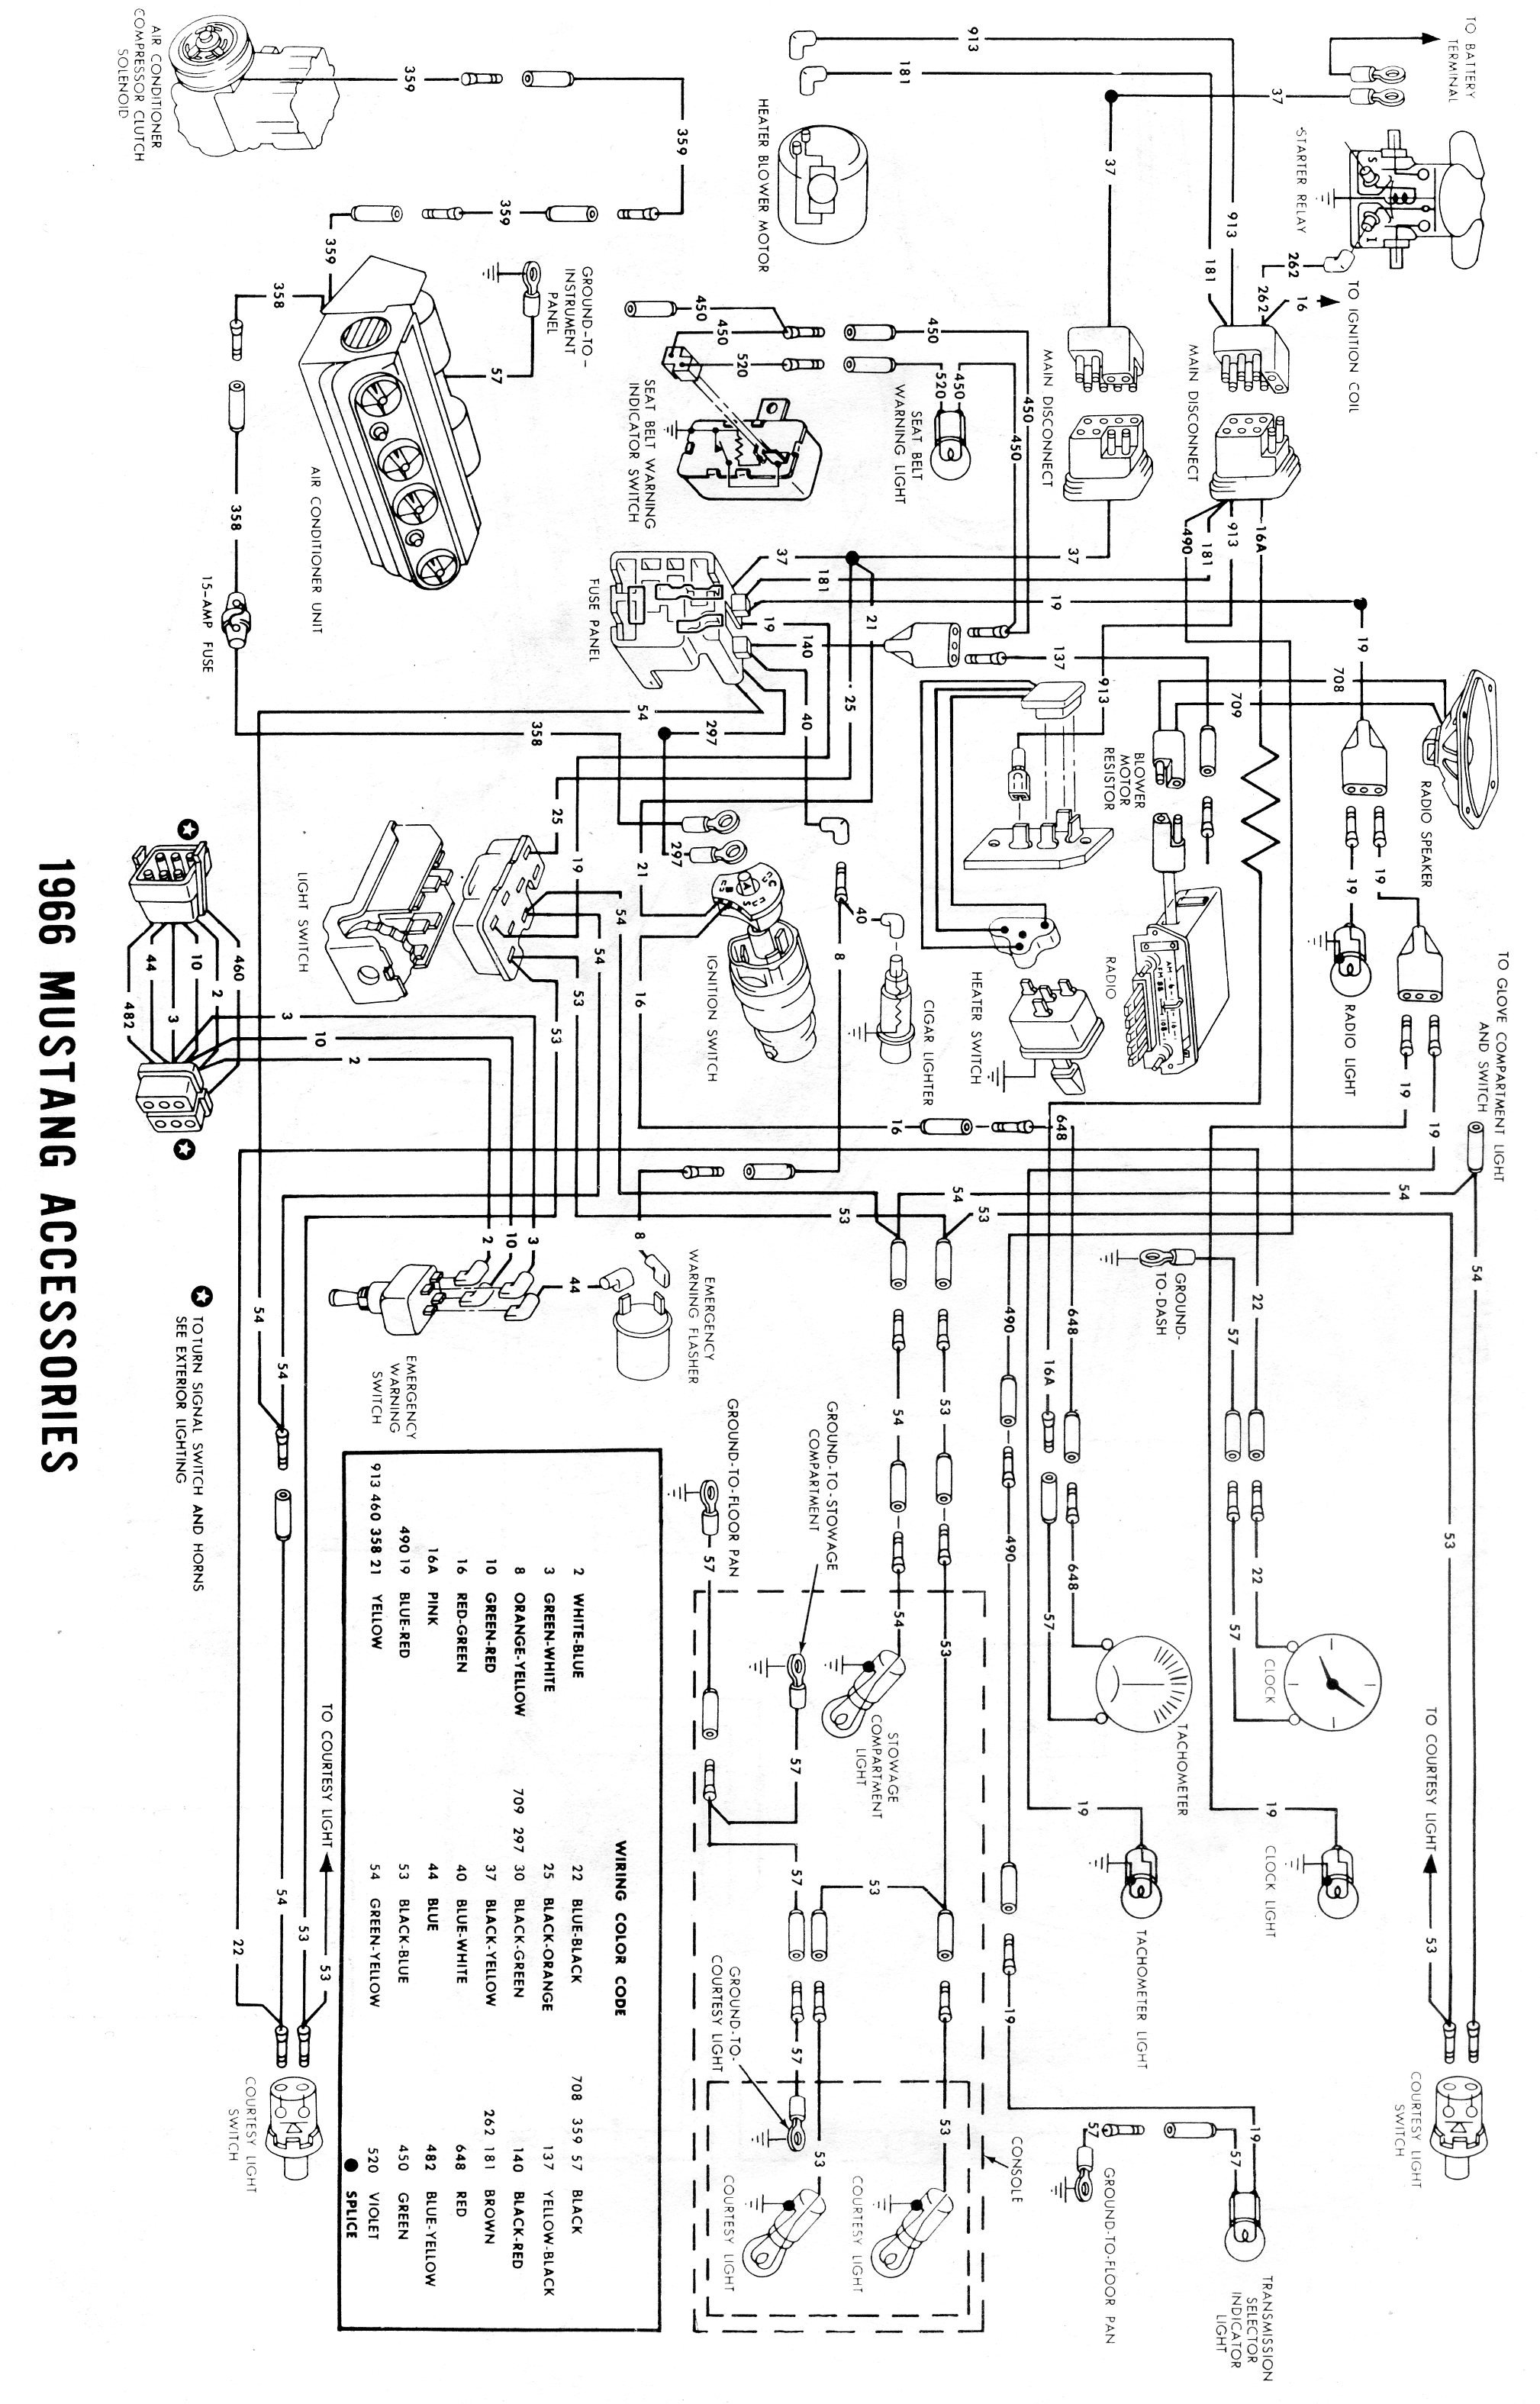 1969 Mustang Wiring Diagram Mazda Cx 7 Fuse Box Diagram